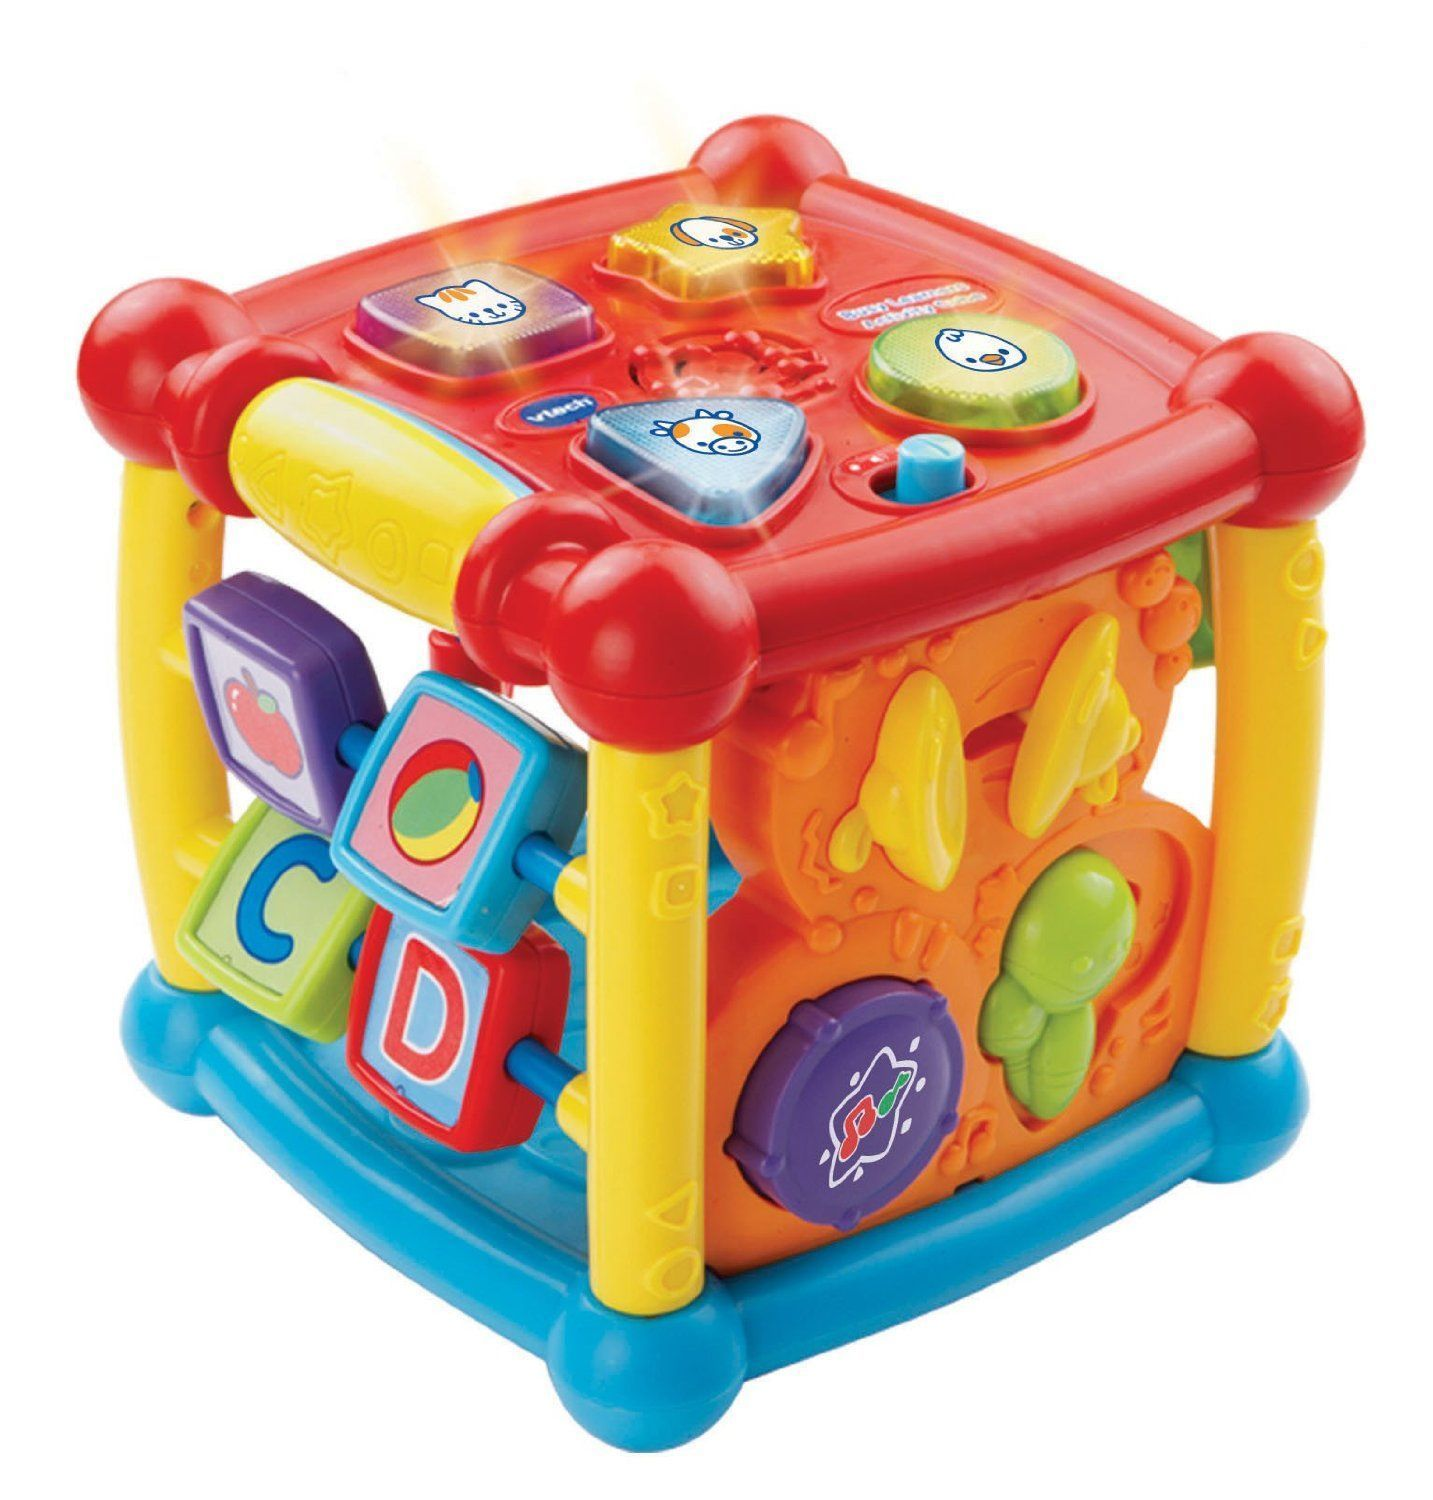 Best Toys 4 Toddlers  Top 10 Toys That Promote